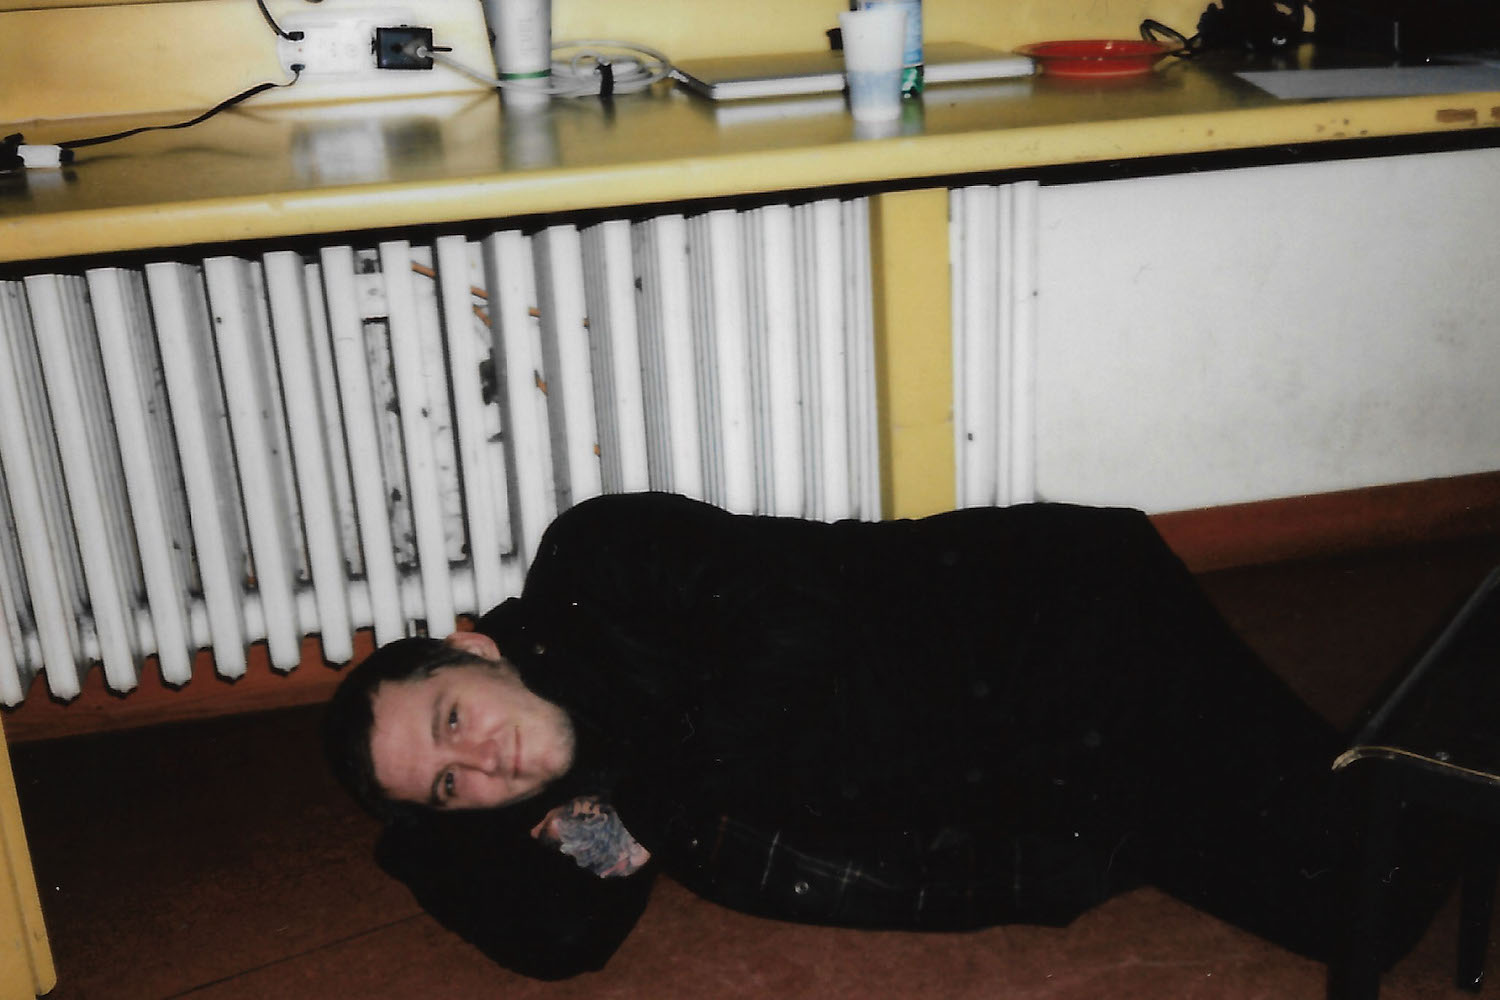 Gaslight Anthem's Brian Fallon curls up on the floor next to the heater.